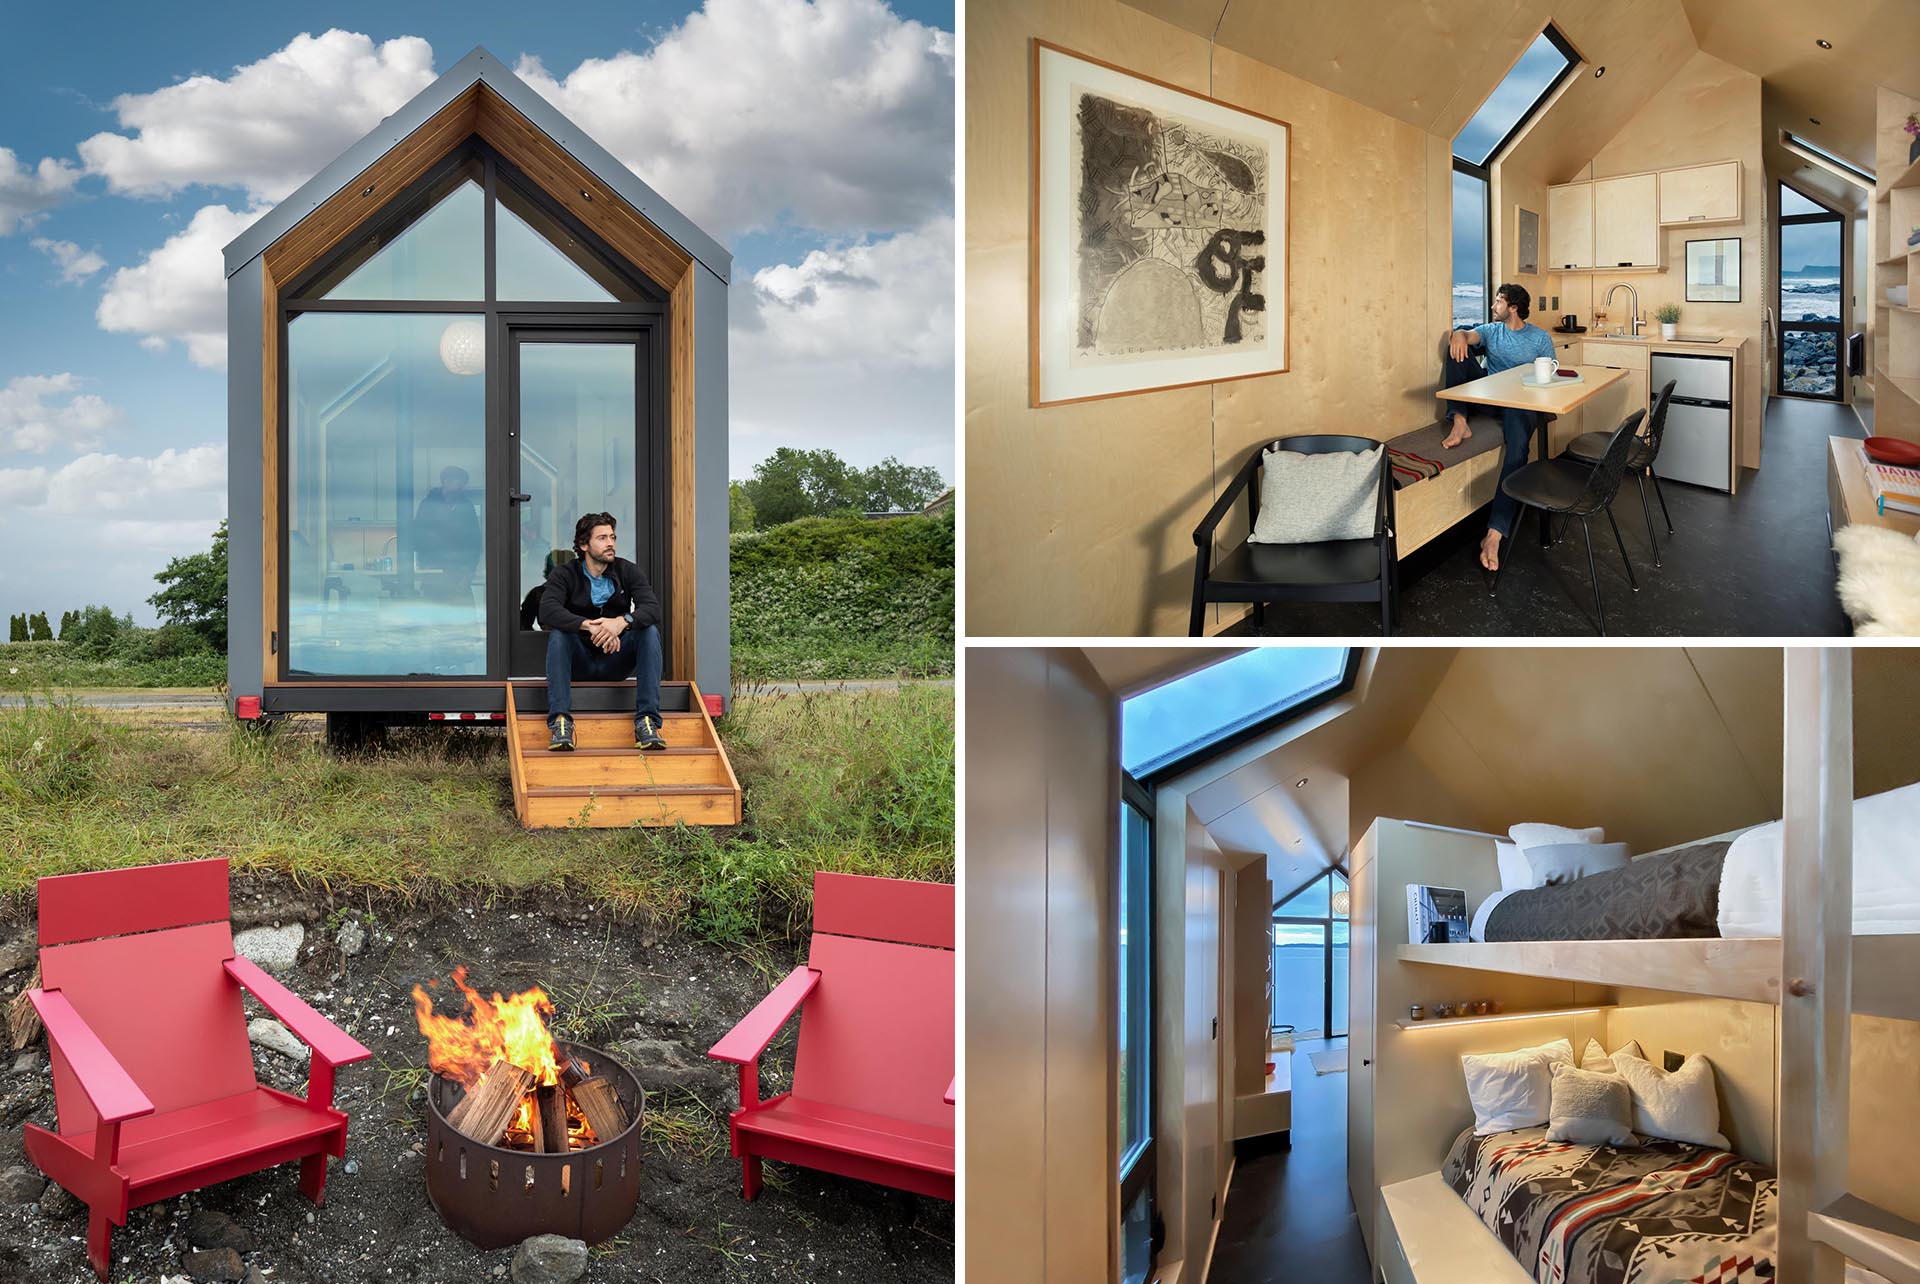 A modern tiny home with a small porch, a birch plywood interior, and bunk beds.